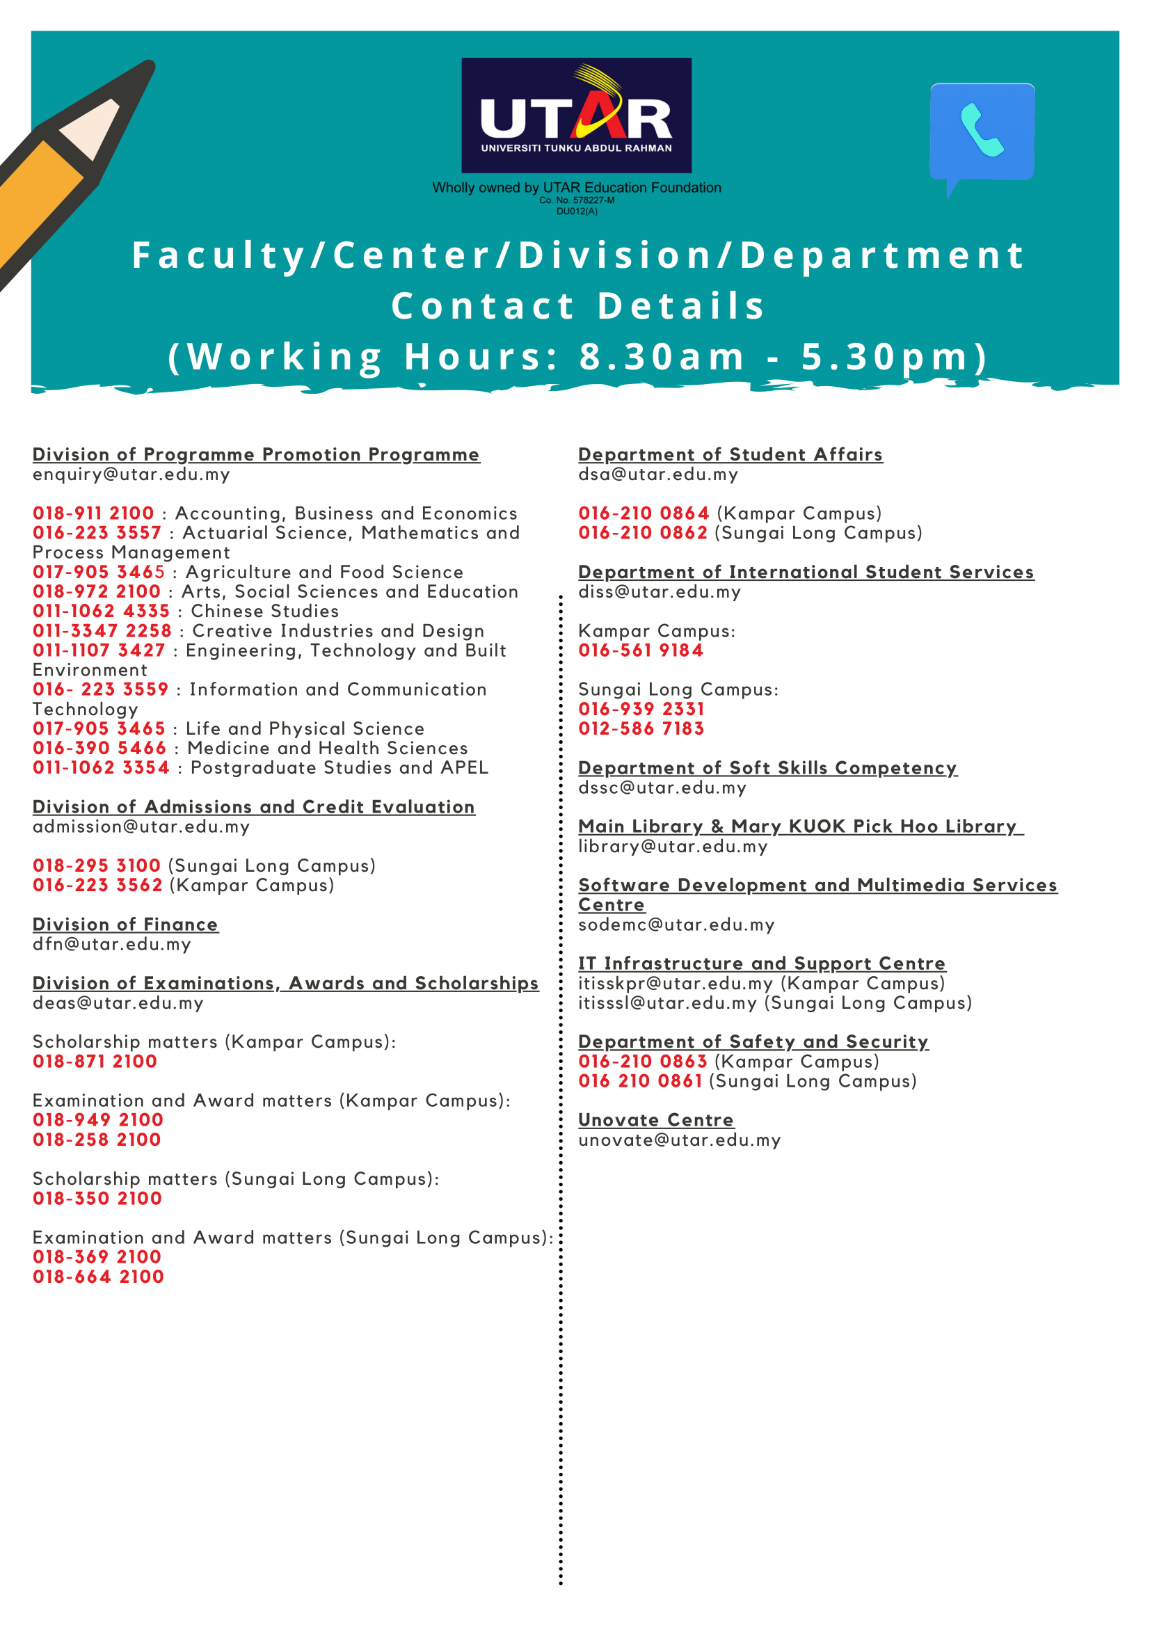 contacts of various utar administrative departments